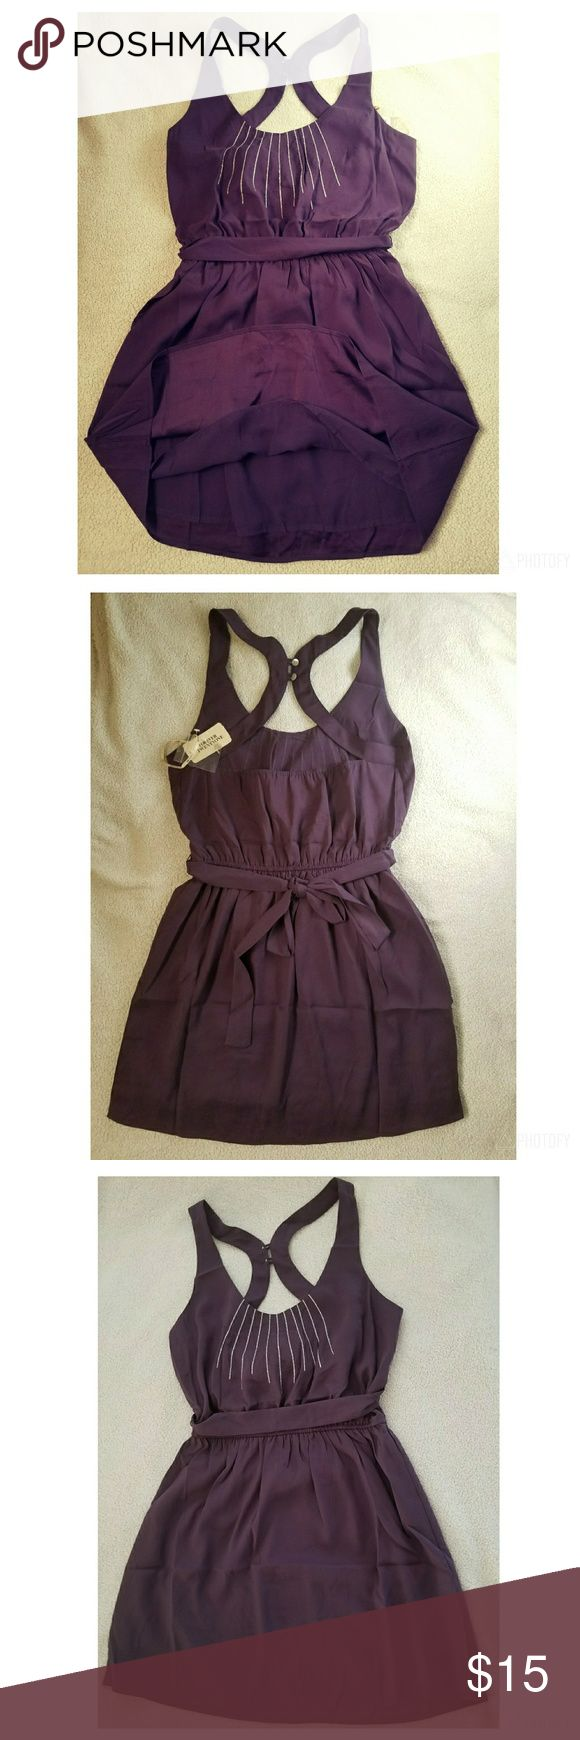 Rory Beca Forever21 Semi Backless Dress, Short. Rory Beca Forever21 Short, Semi Backless Dress, belted. Color is Purple. Item is new with tag. See pictures :) *** Make me an offer, I consider them all! Feel free to ask questions, I'm happy to post more pictures or details at your request.  Let's create your own bundle! Thanks for shopping Nellyscart! Dresses